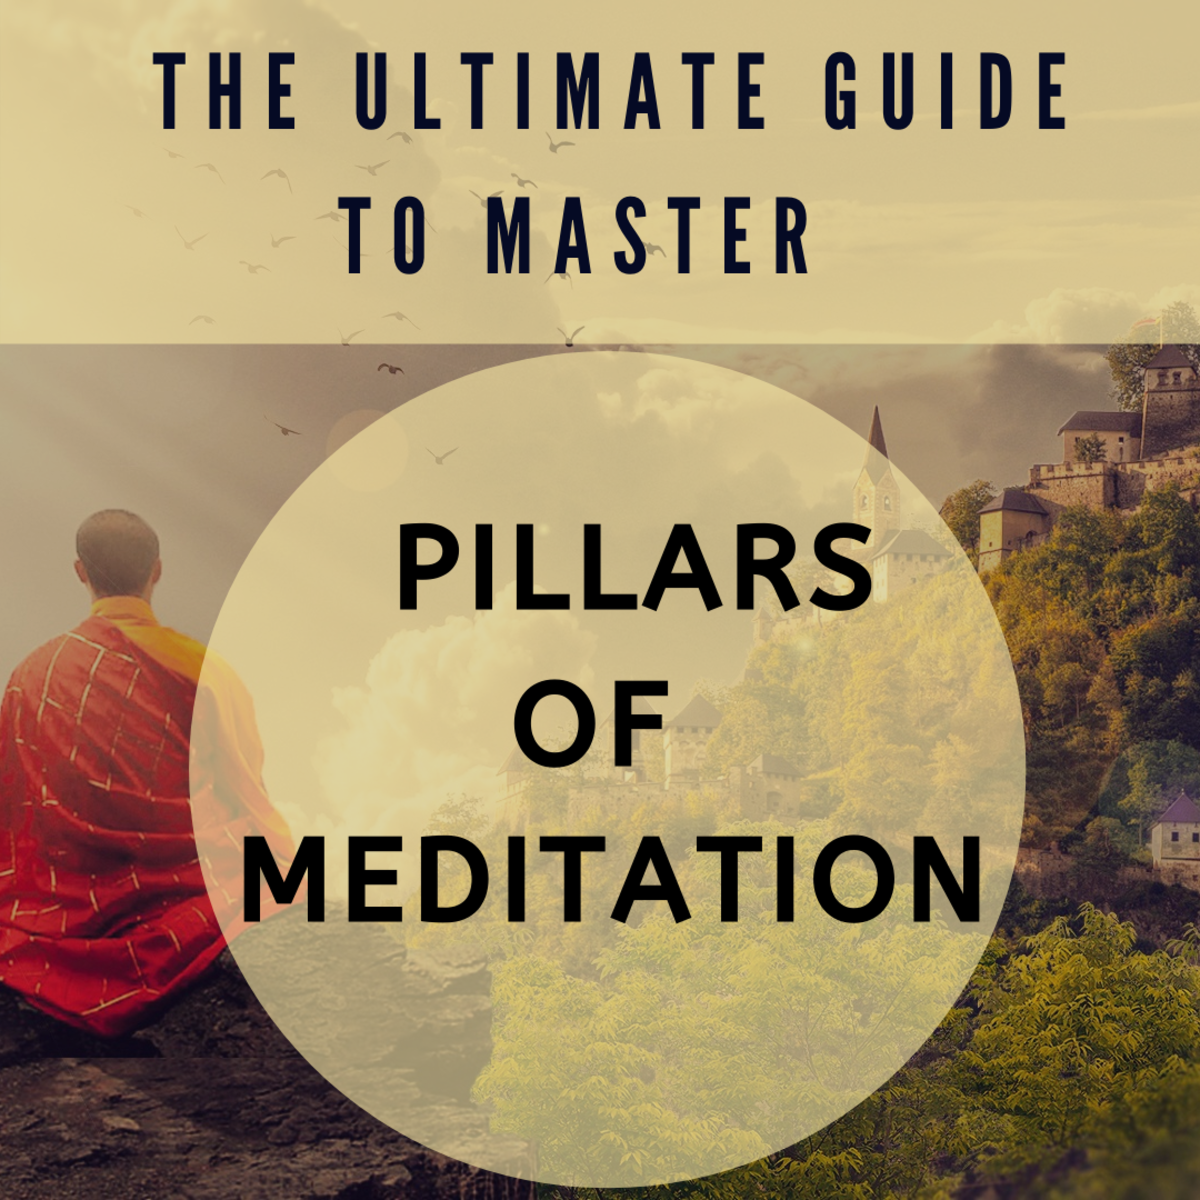 The ultimate guide to master the pillars of meditation to keep yourself mentally, emotionally, and physically fit